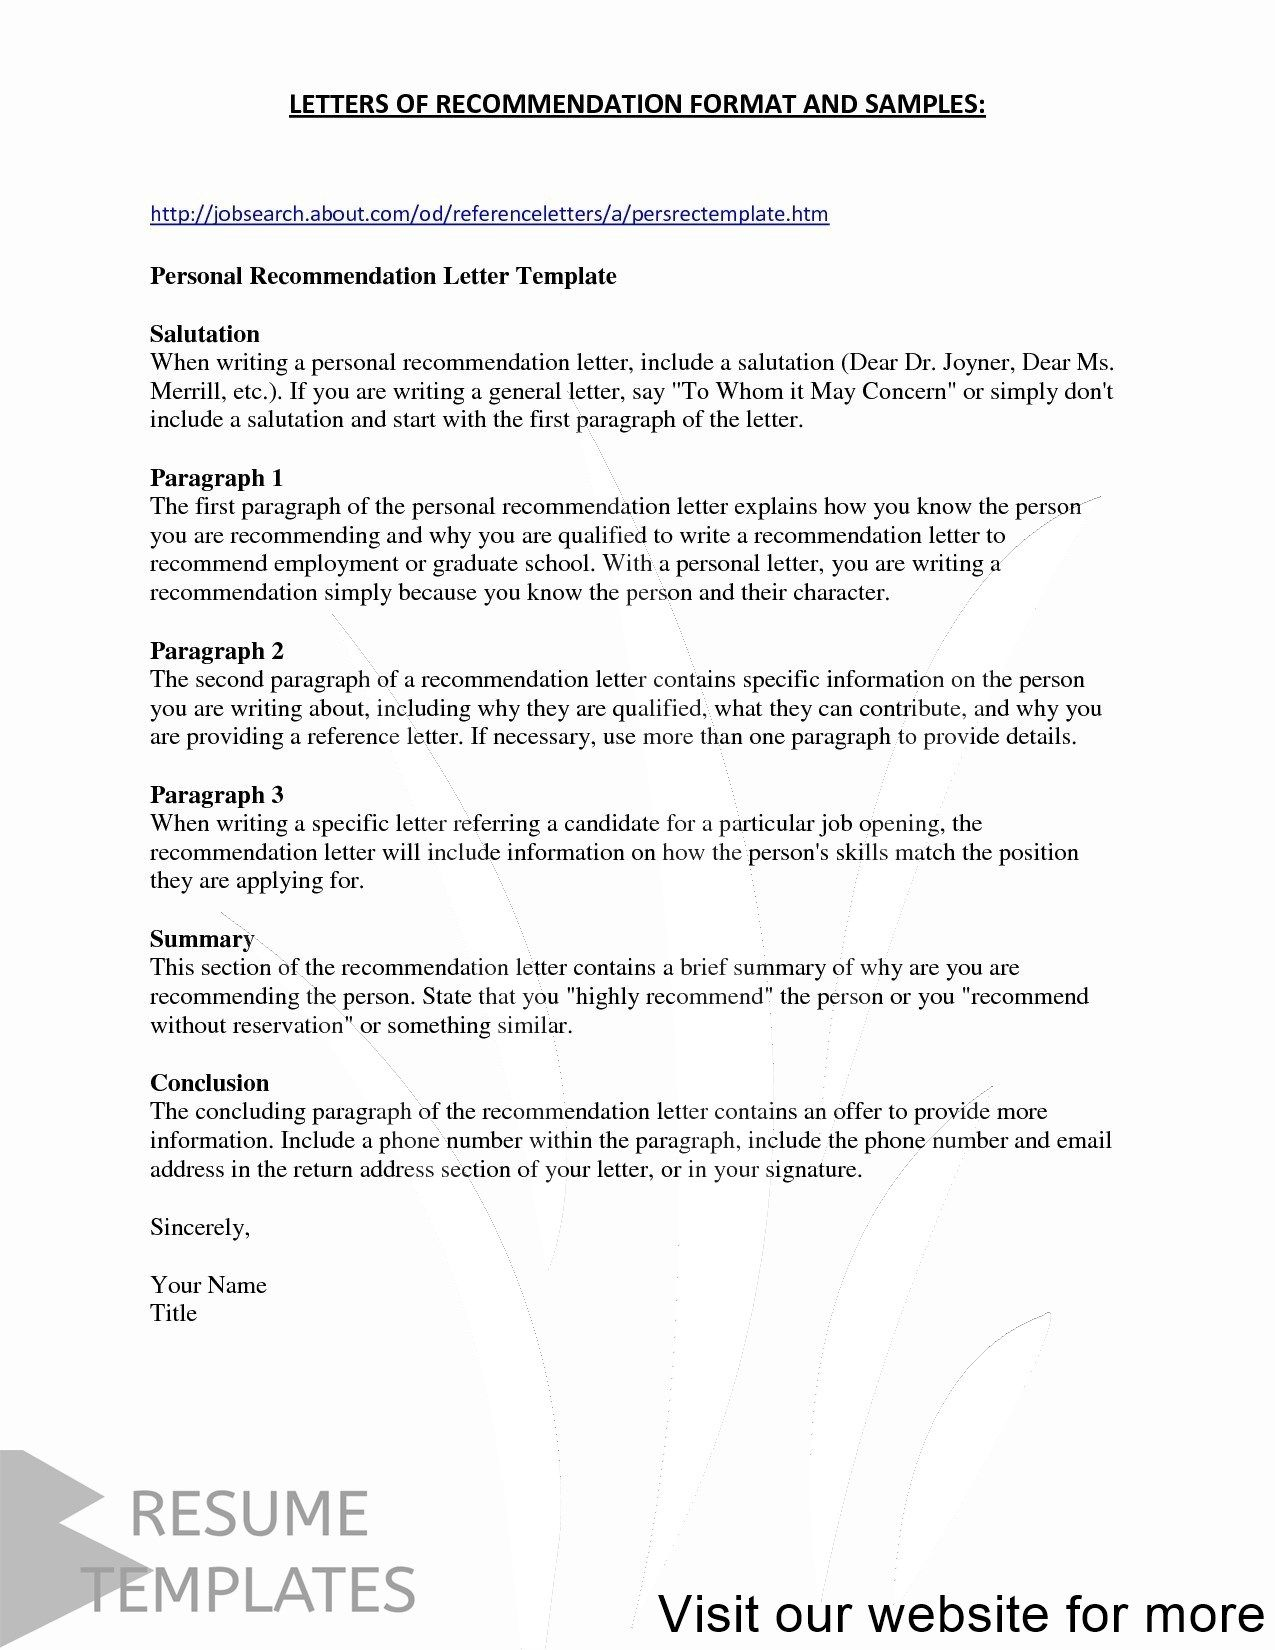 management resume examples in 2020 (With images) Job